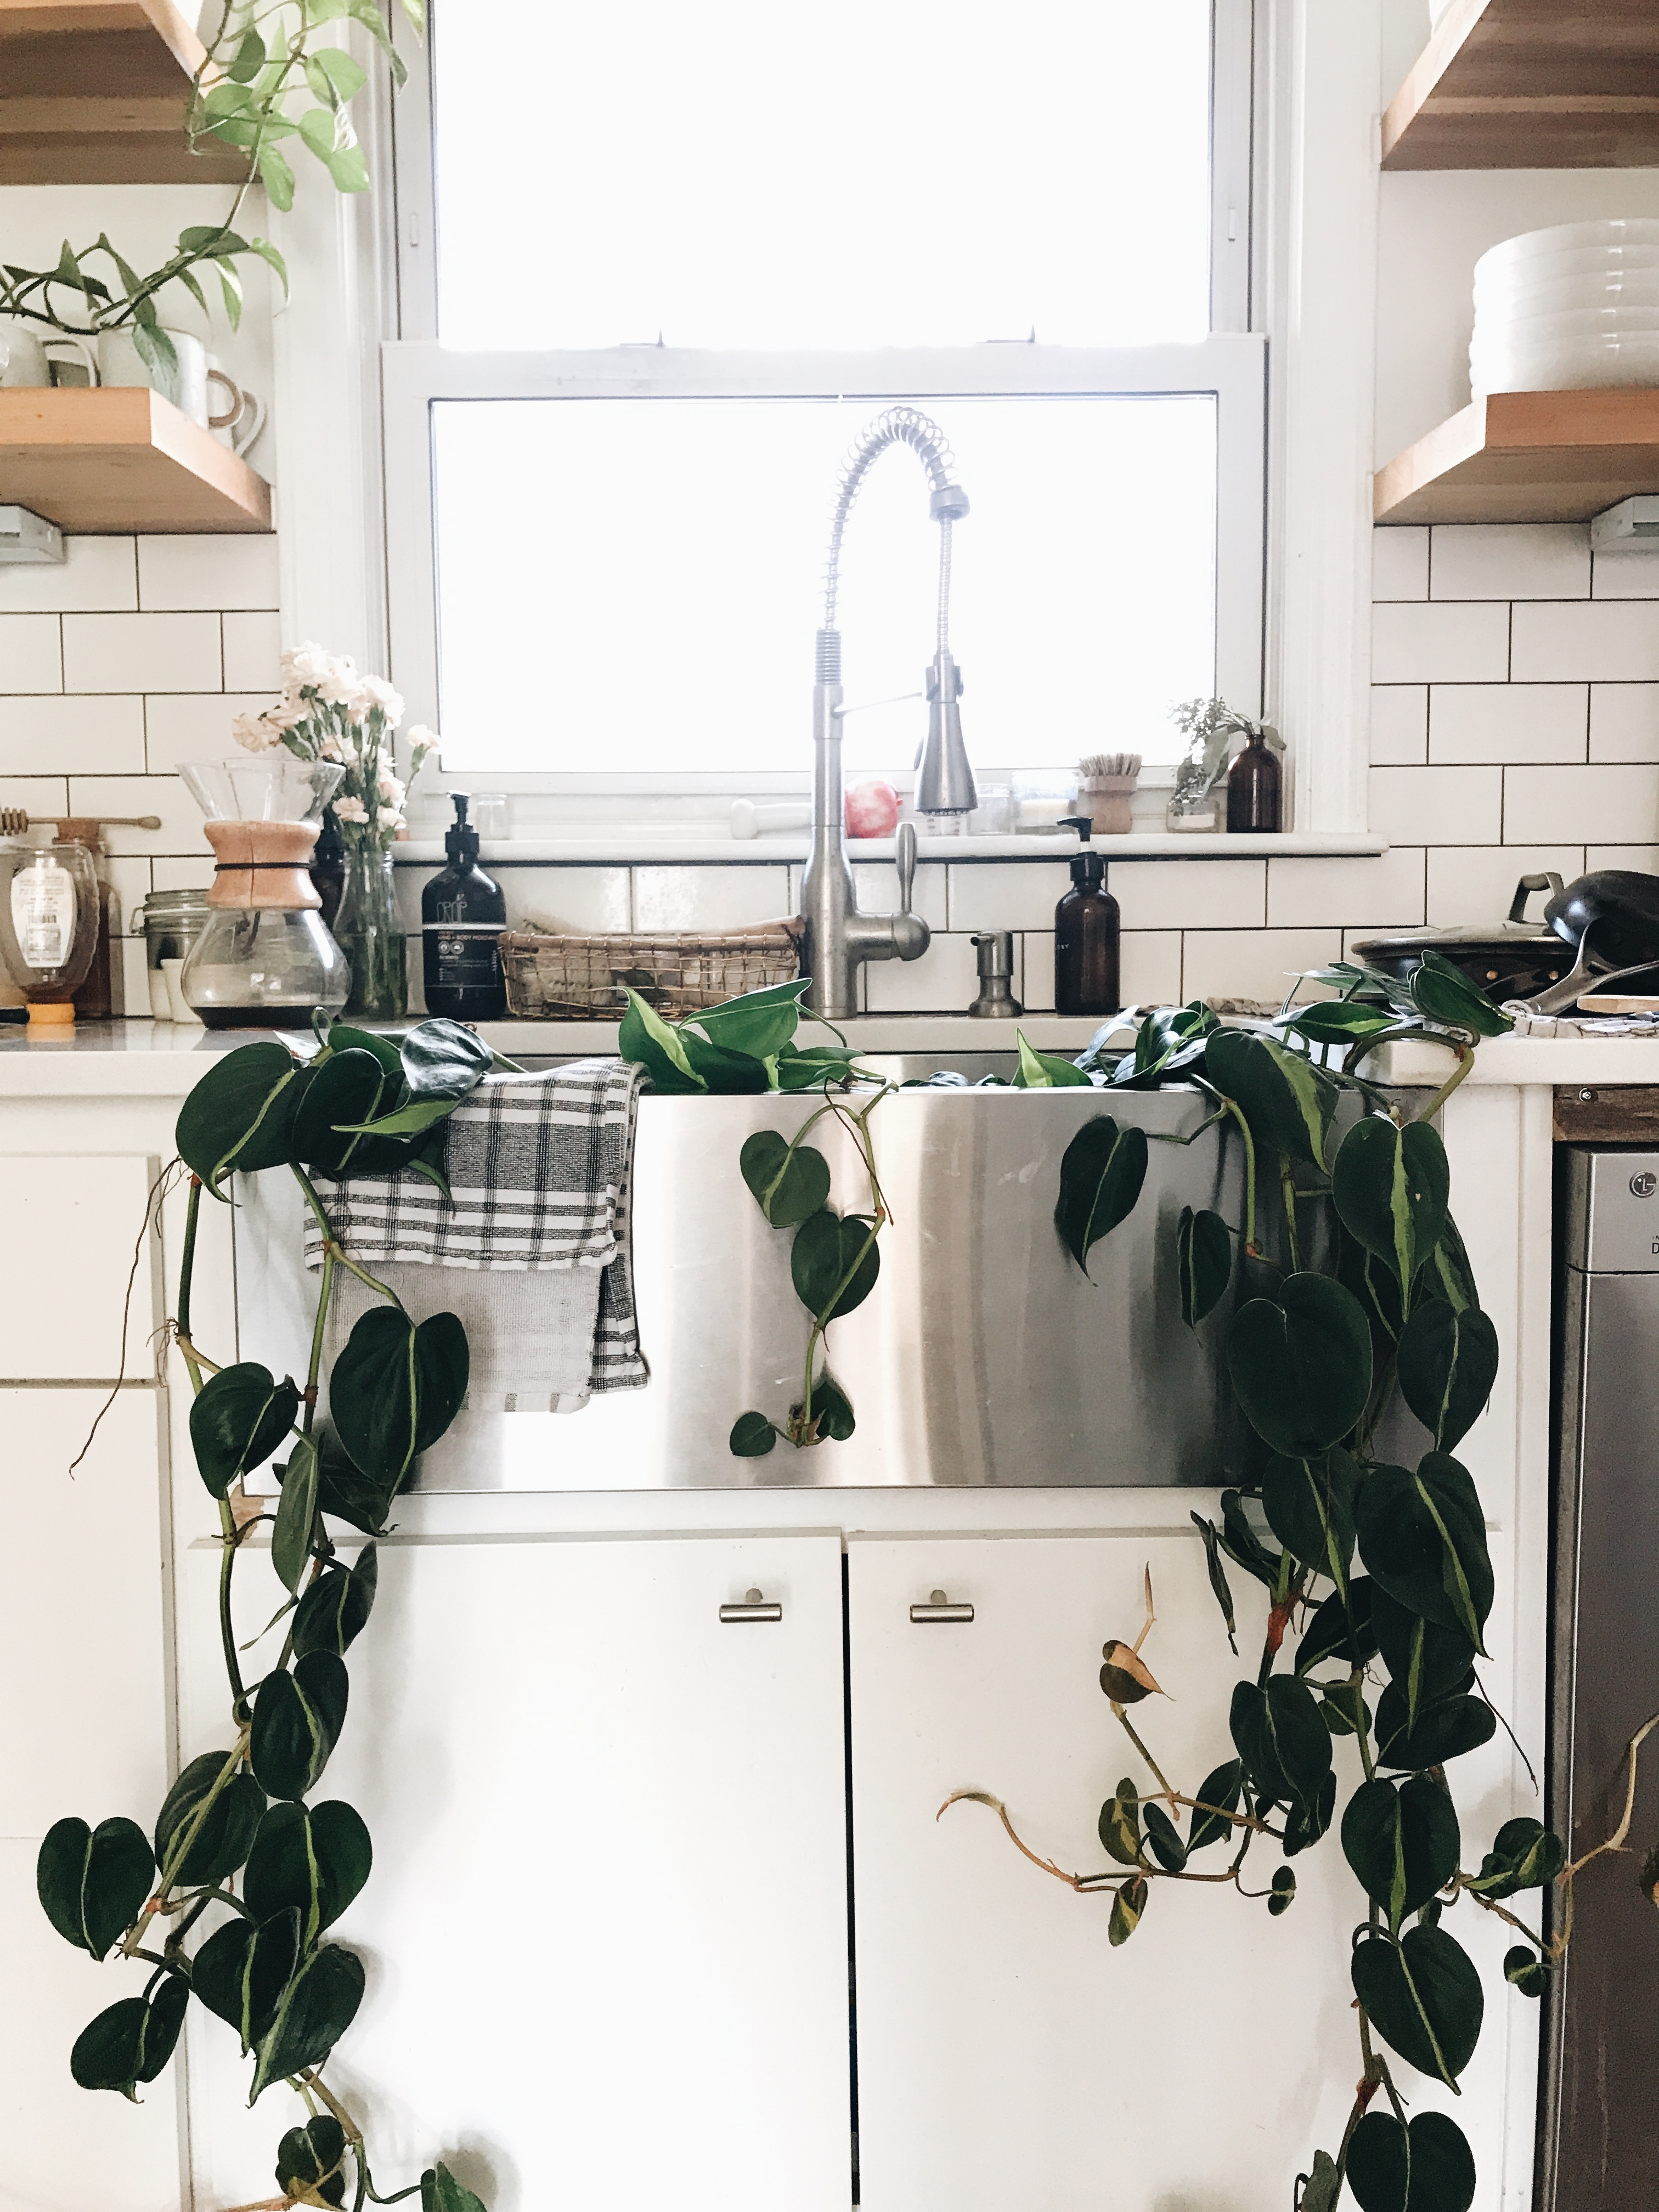 plant in sink